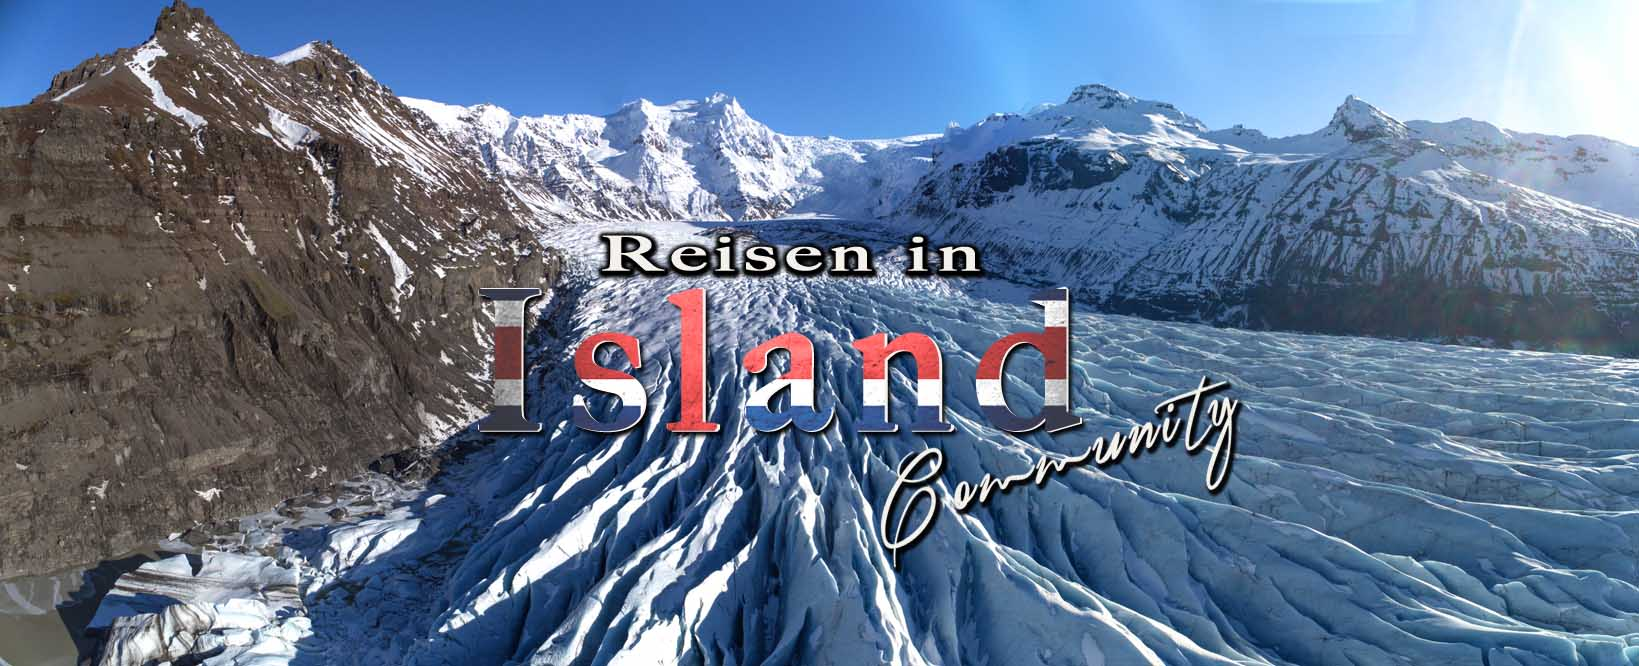 Die Reisen in Island Community bei Facebook